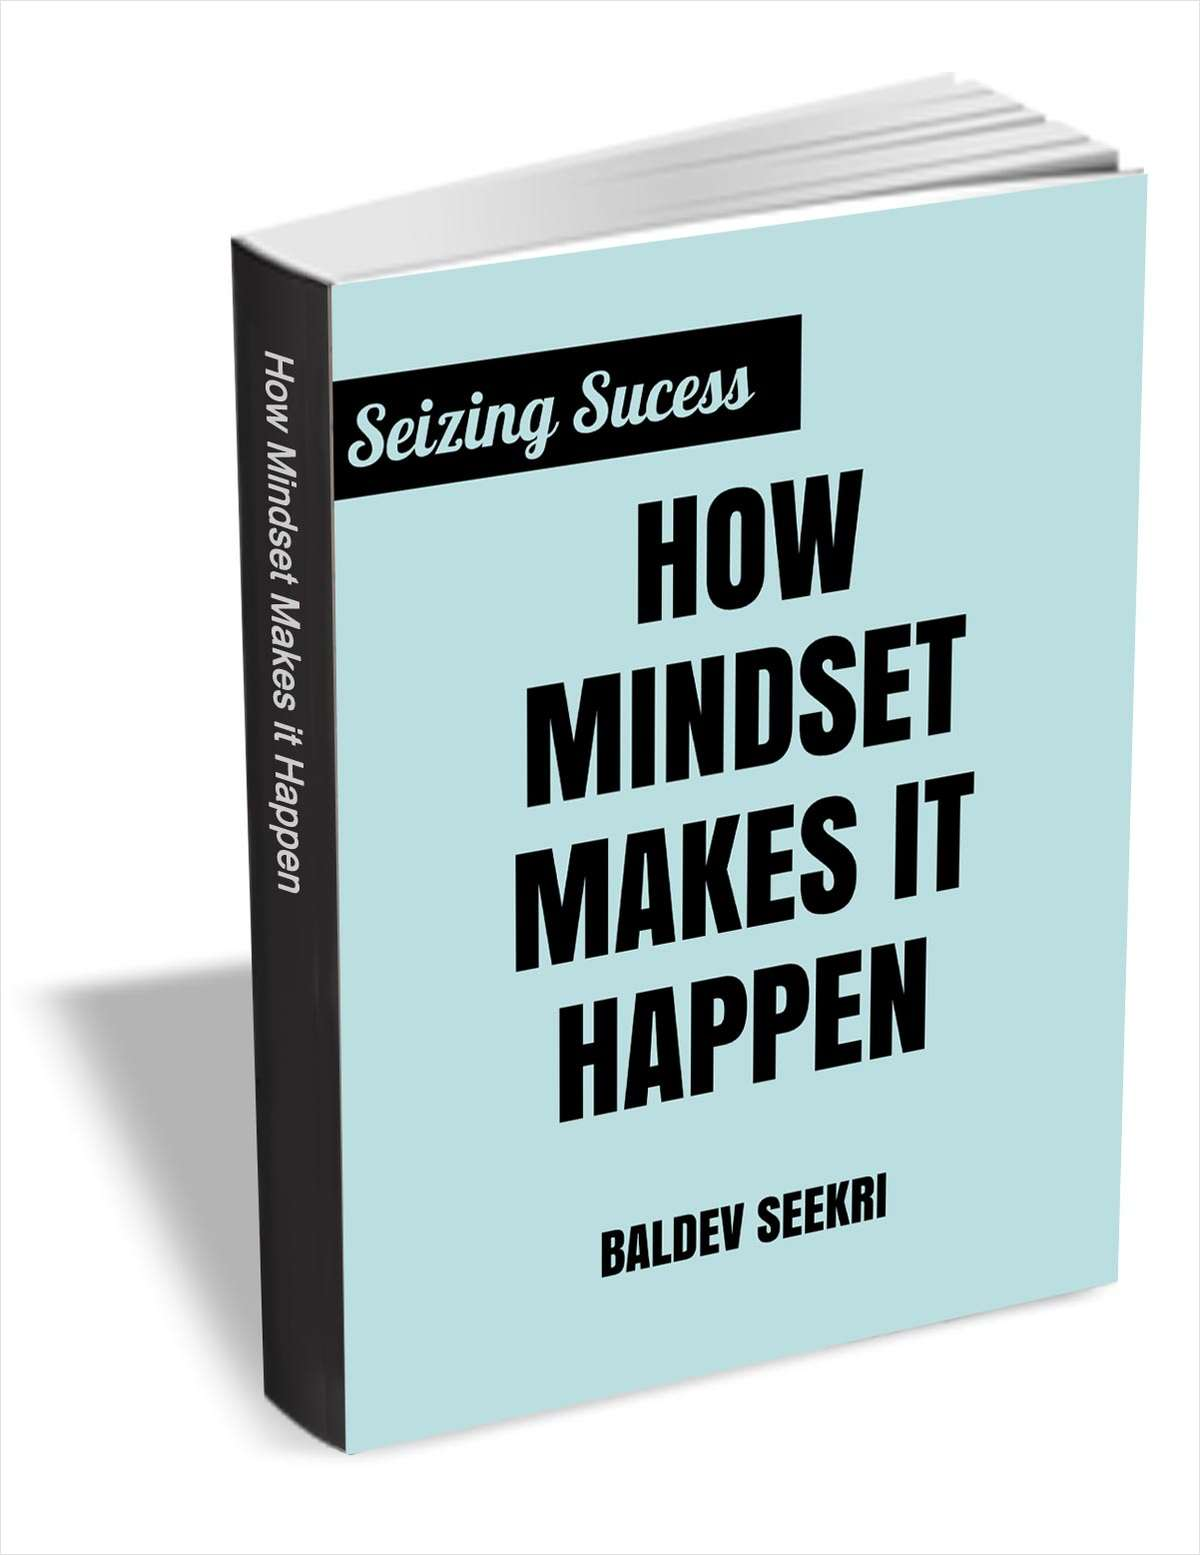 Seizing Success - How Mindset Makes It Happen